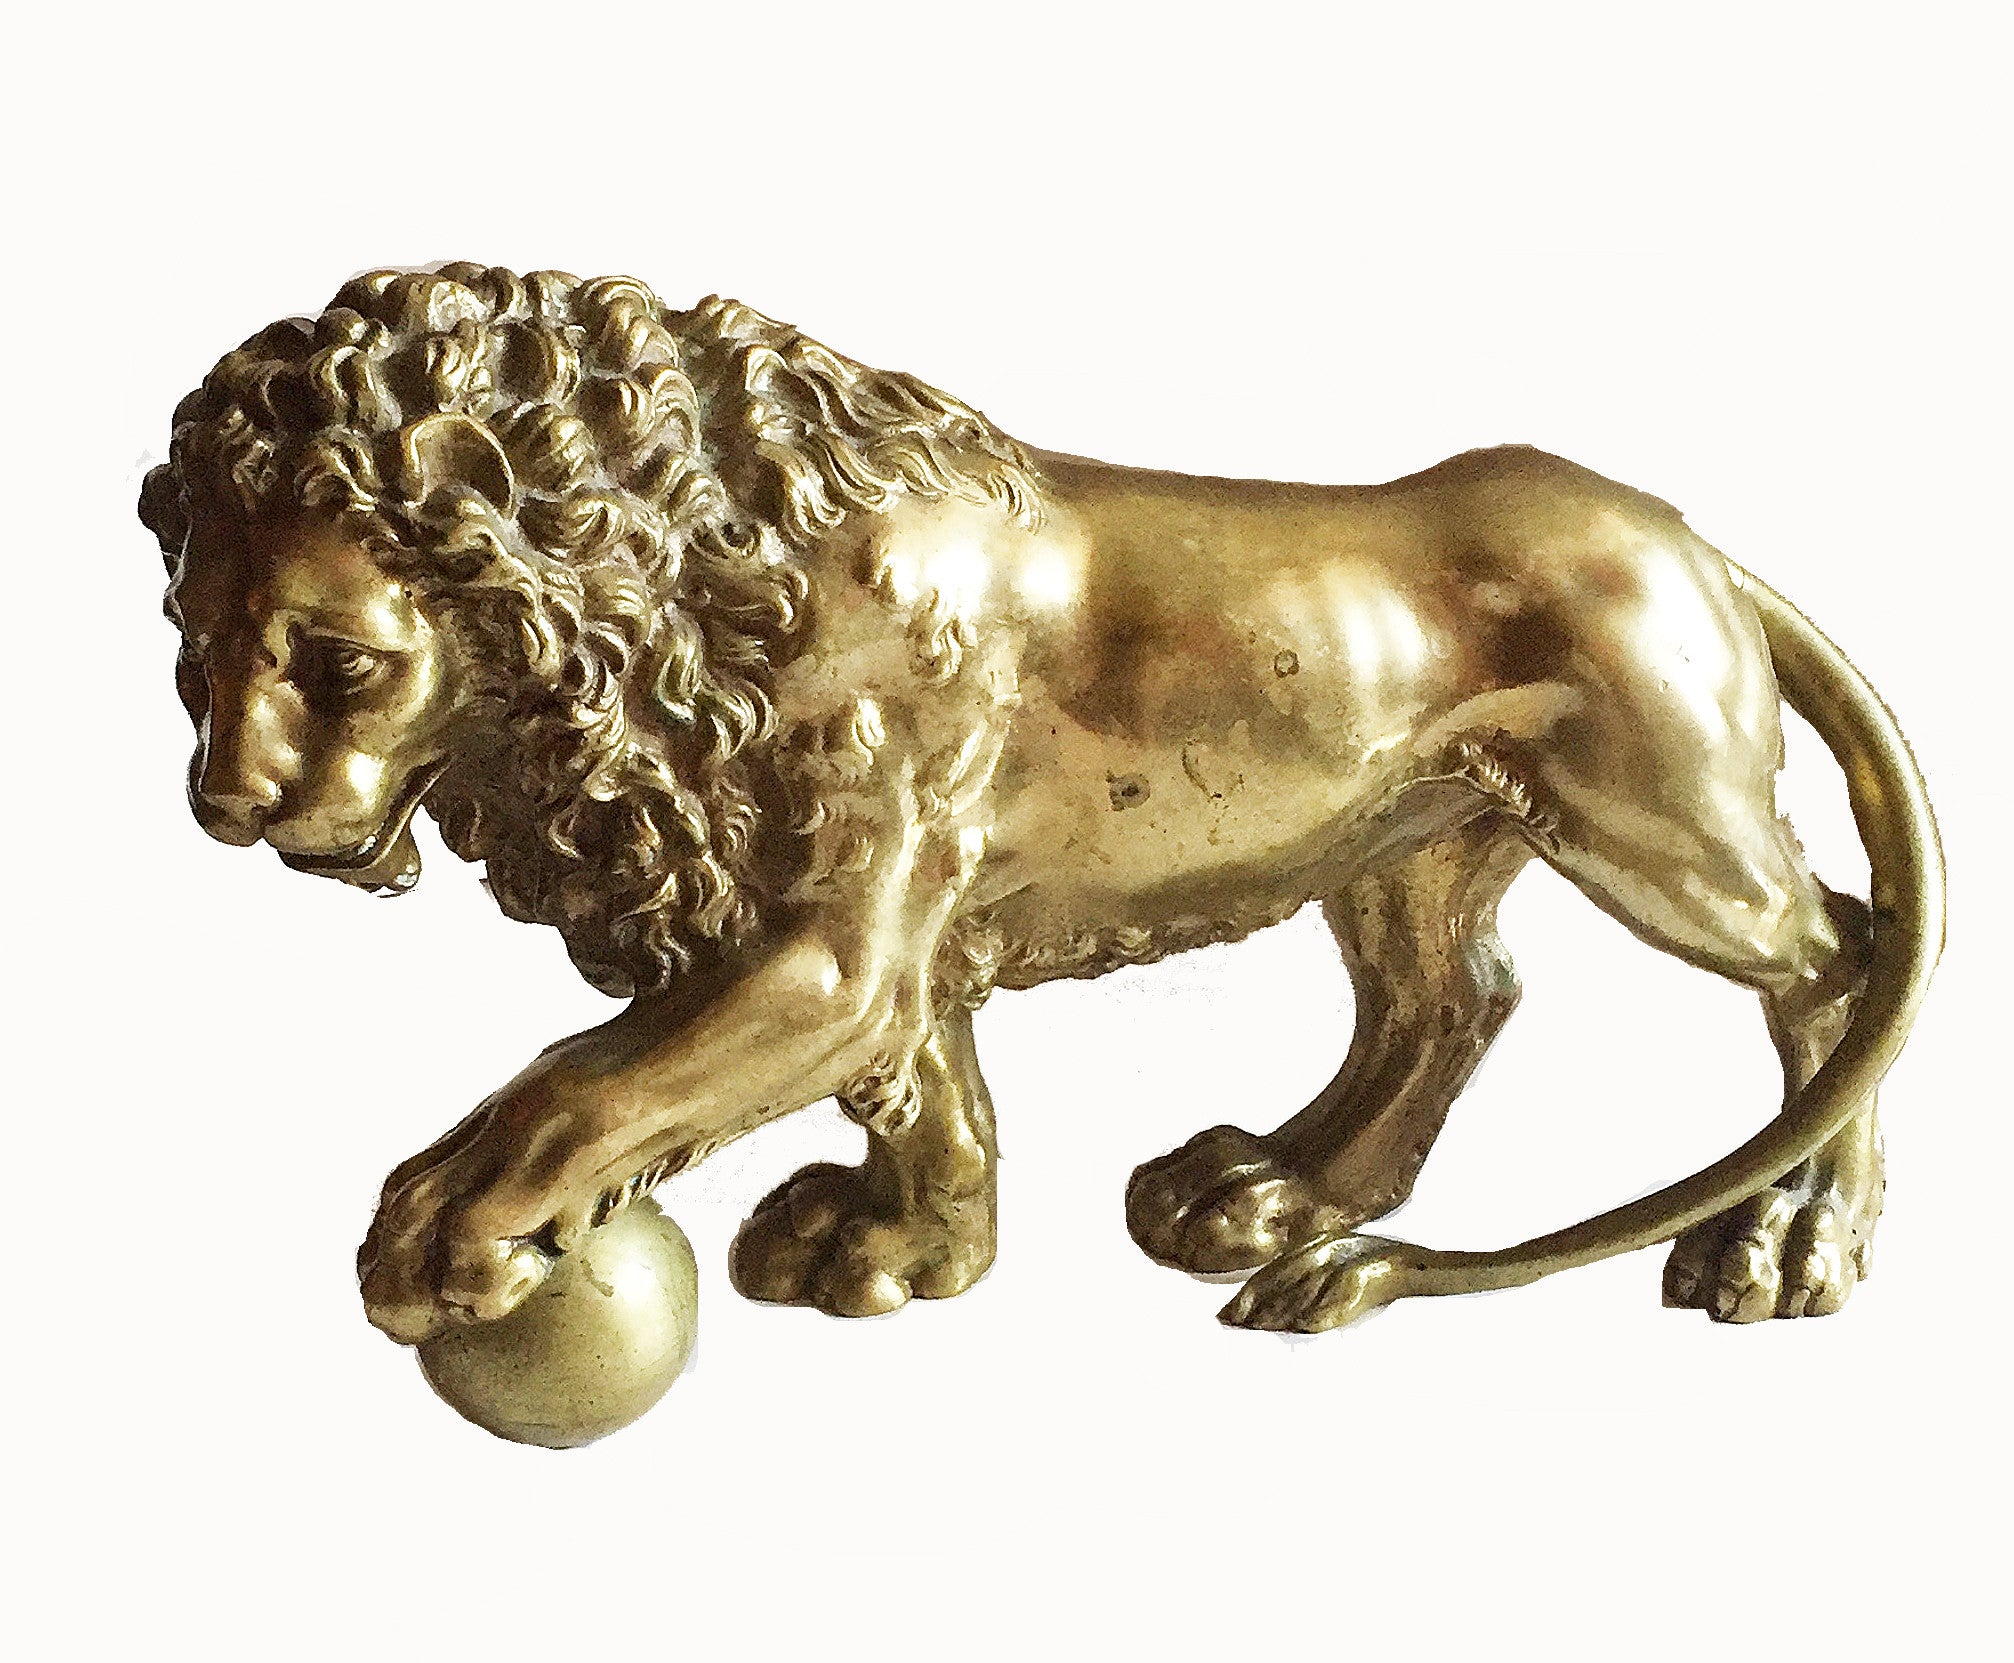 SOLD Continental Gilt-Bronze Figure of a Lion, after the Antique